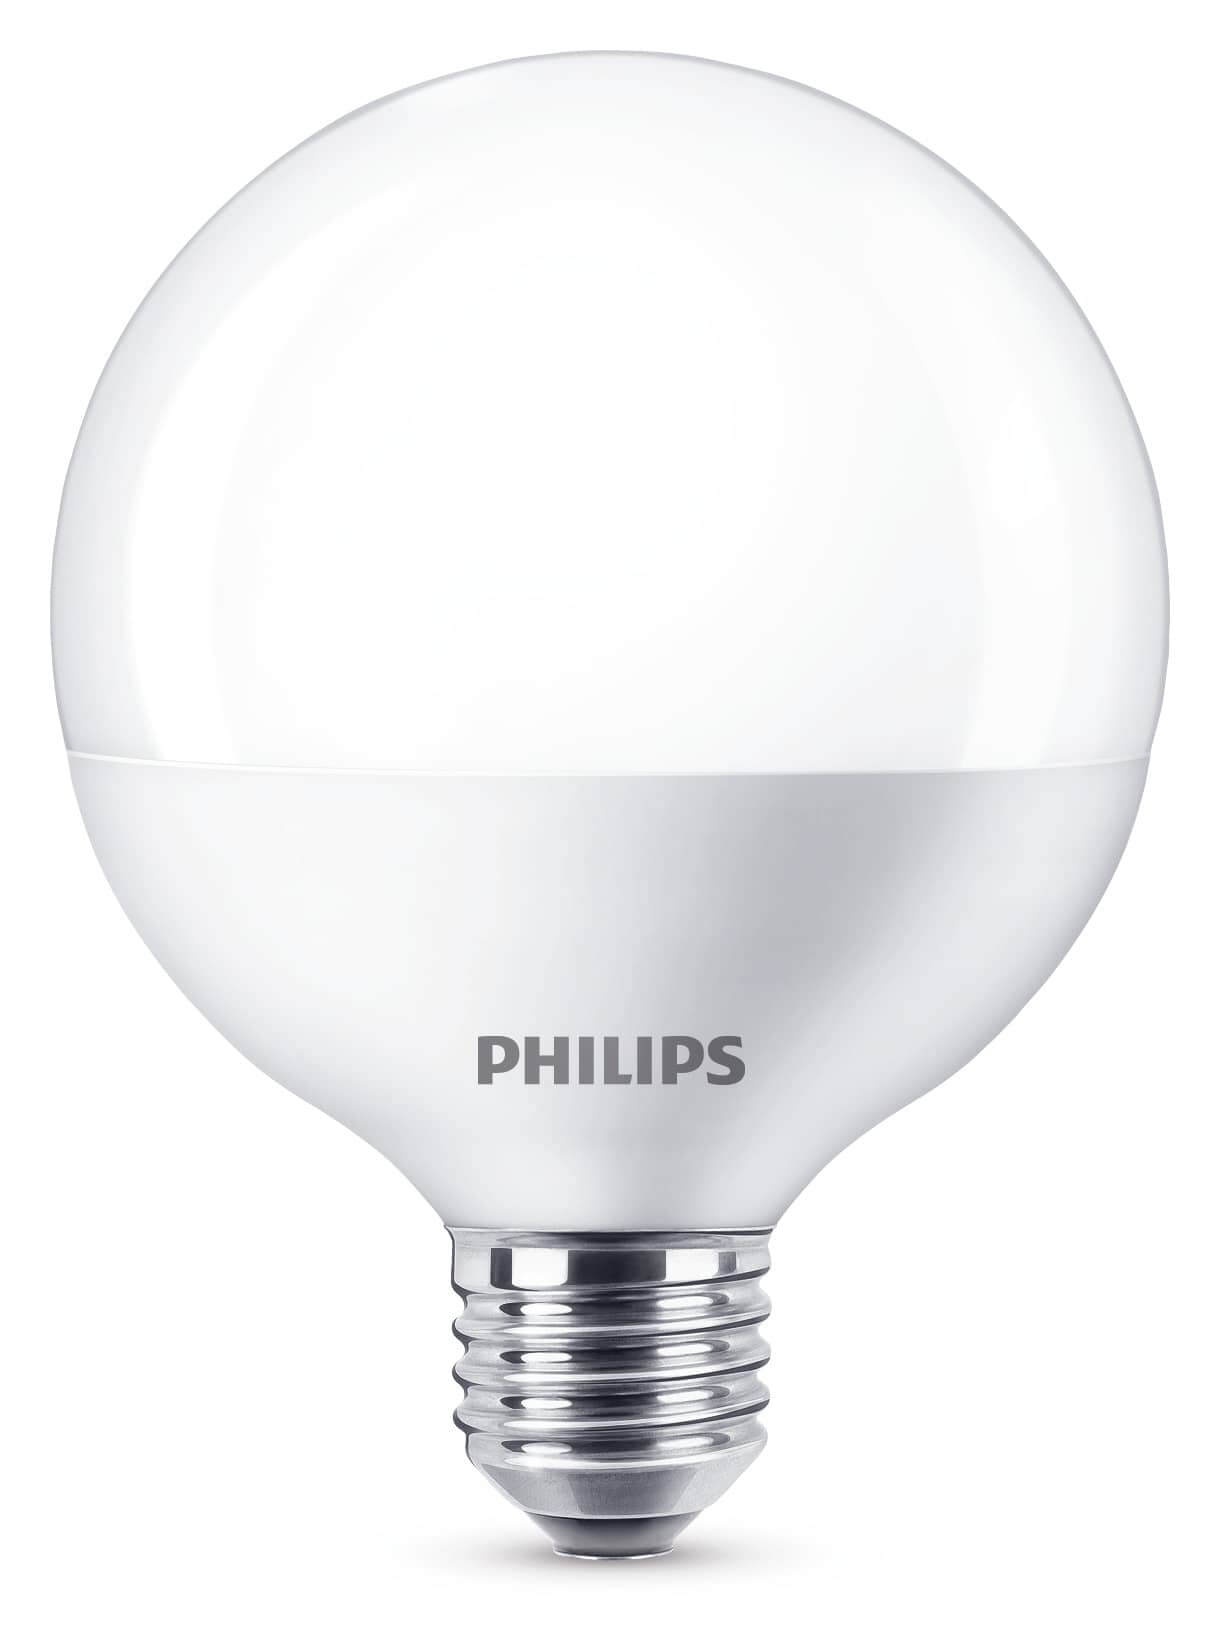 philips e27 led globe filament 9 5w 806lm warmweiss online. Black Bedroom Furniture Sets. Home Design Ideas